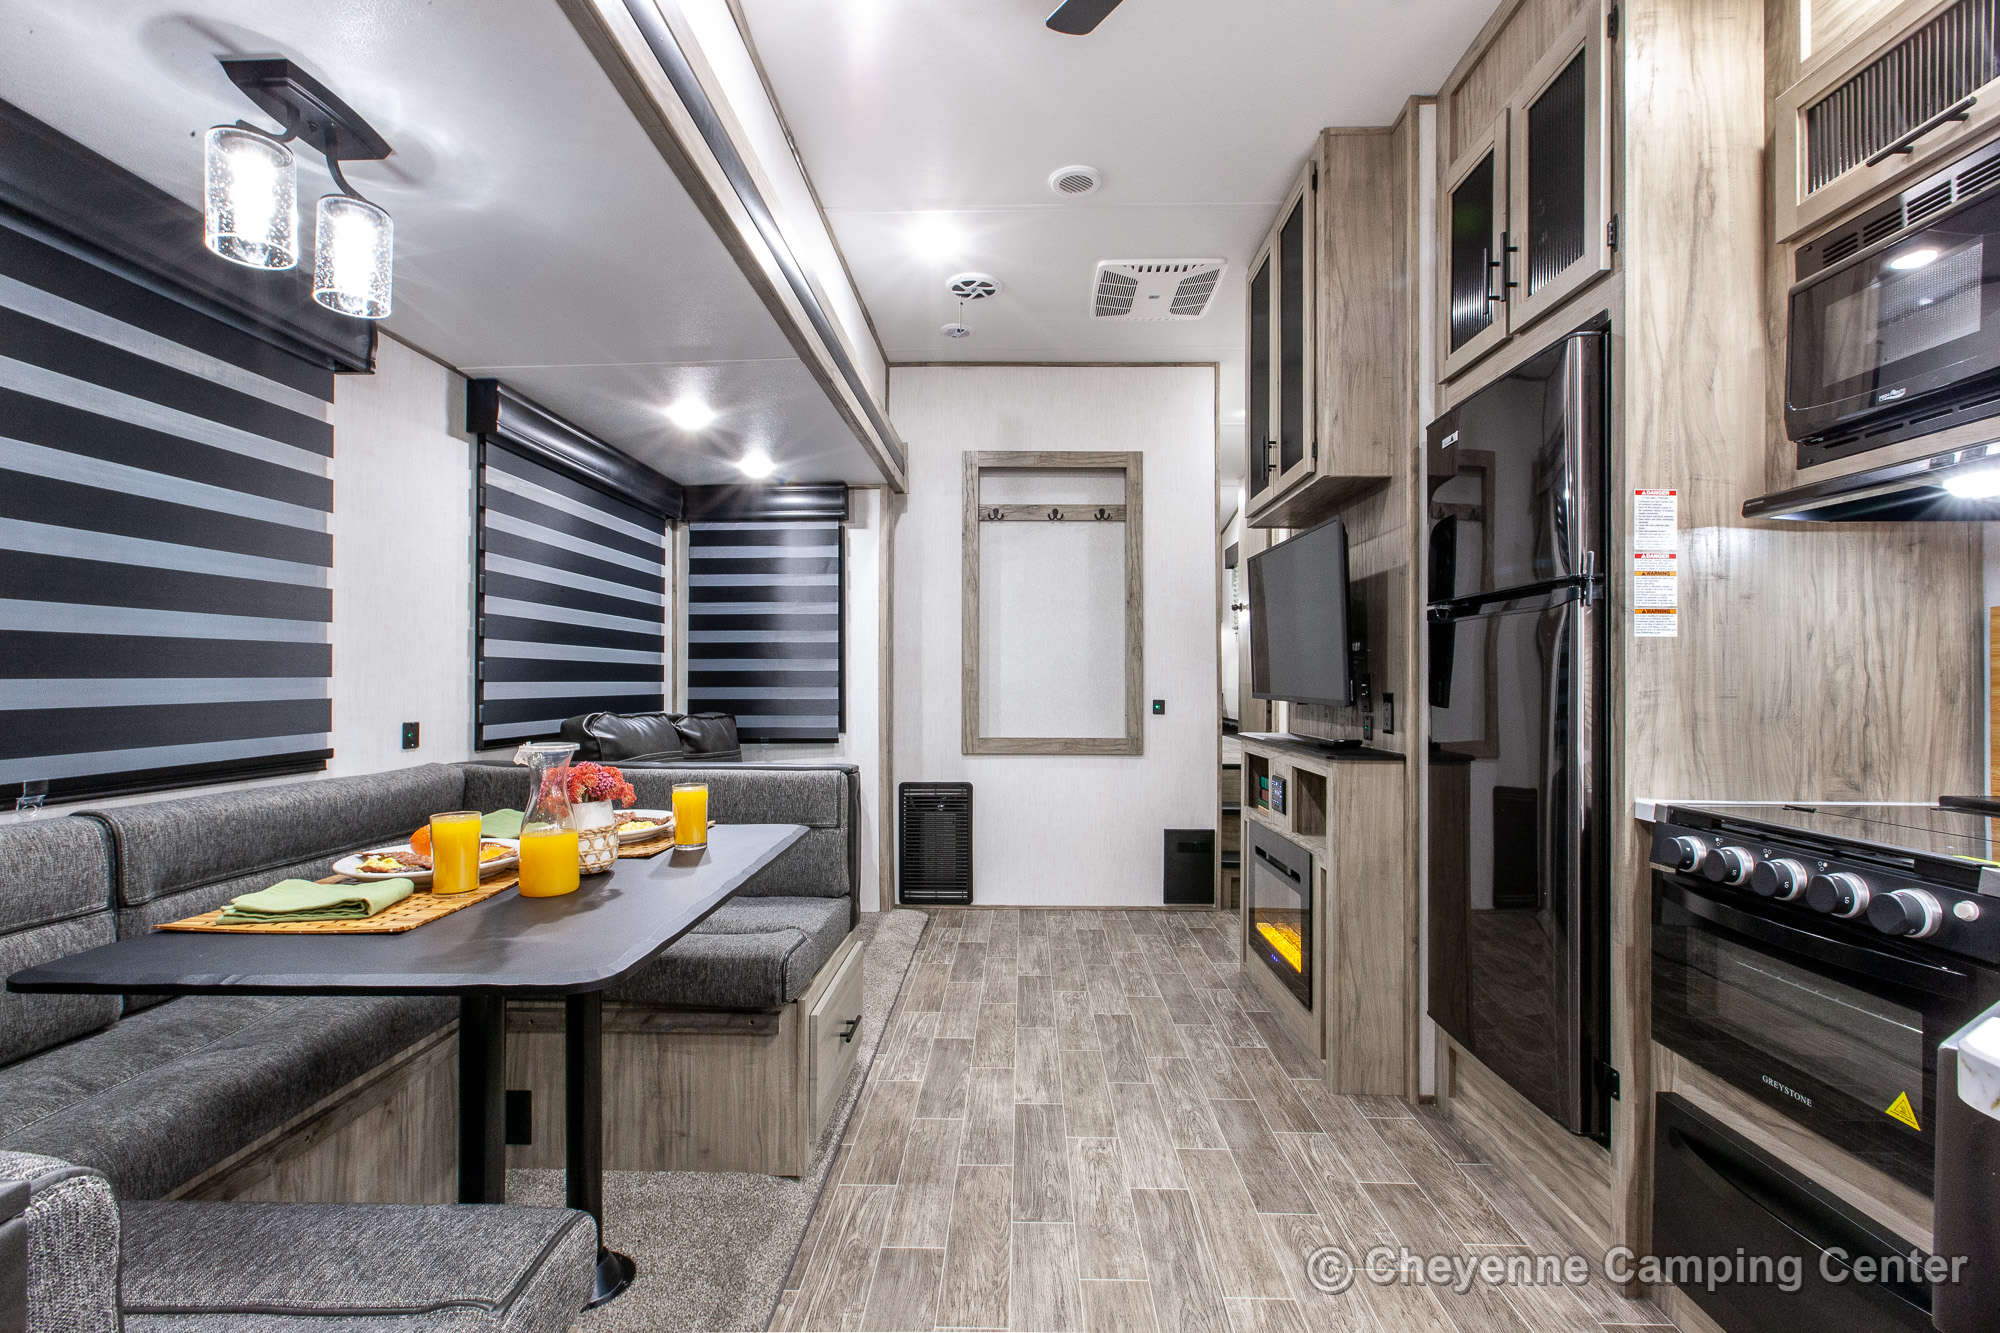 2021 Forest River Cherokee Arctic Wolf 287BH Bunkhouse Fifth Wheel Interior Image